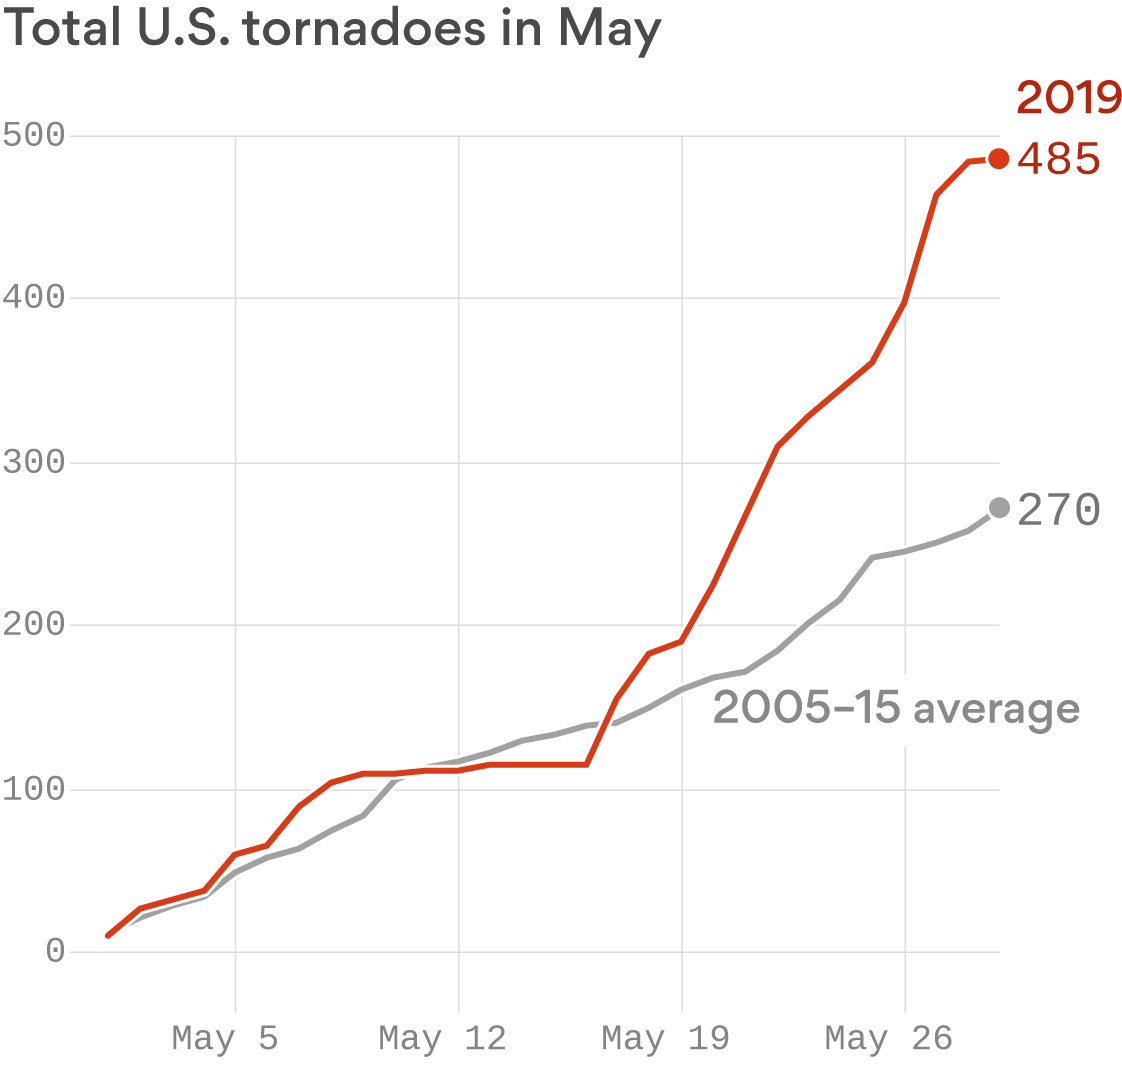 A historic tornado onslaught in central U.S.